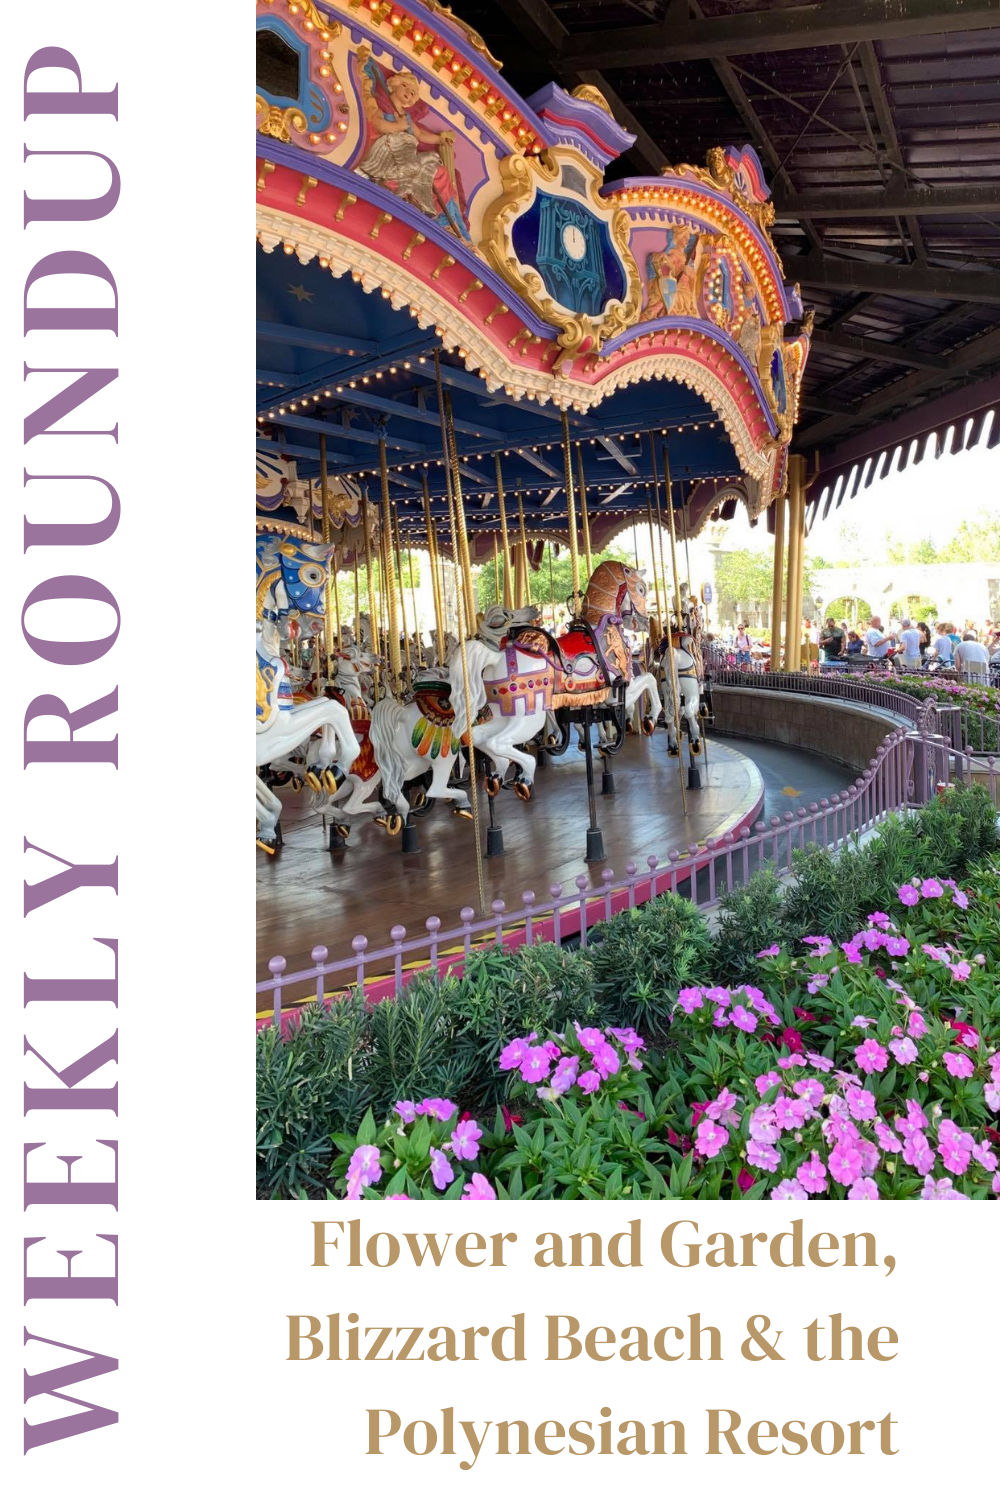 Weekly Roundup: Flower and Garden, Blizzard Beach and the Polynesian Resort